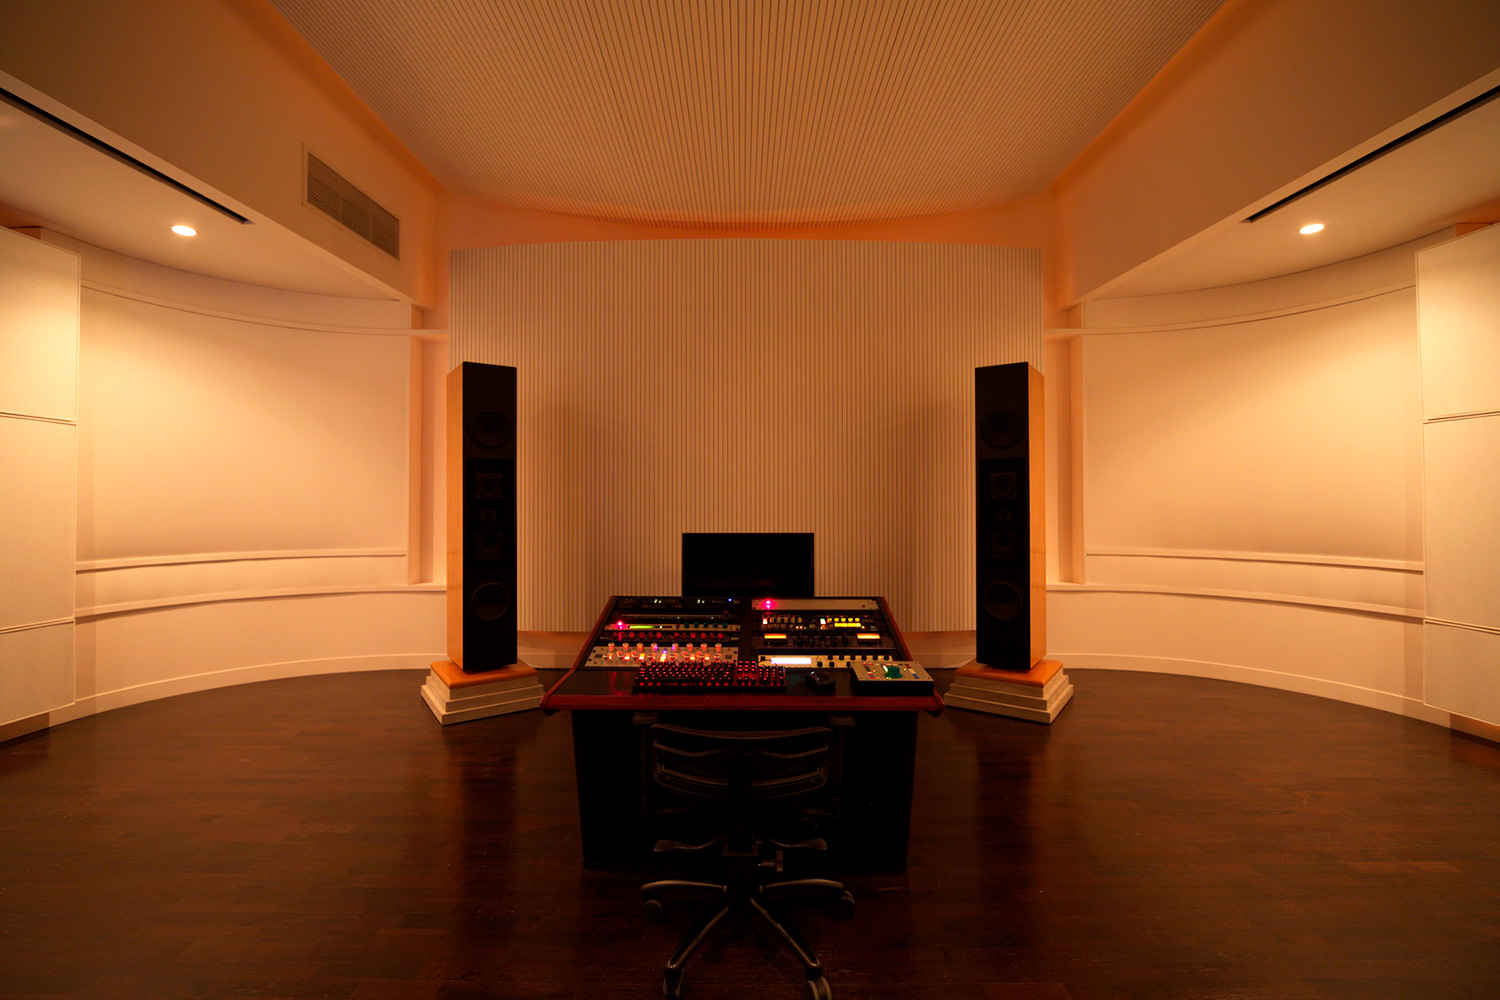 Top mastering engineer and Boiler Room founder Collin Jordan inquired WSDG to fully design his new mastering room in Chicago. WSDG's balance of technical acoustics and artistic design was spot on and made it easy to make the decision. Wider front view.